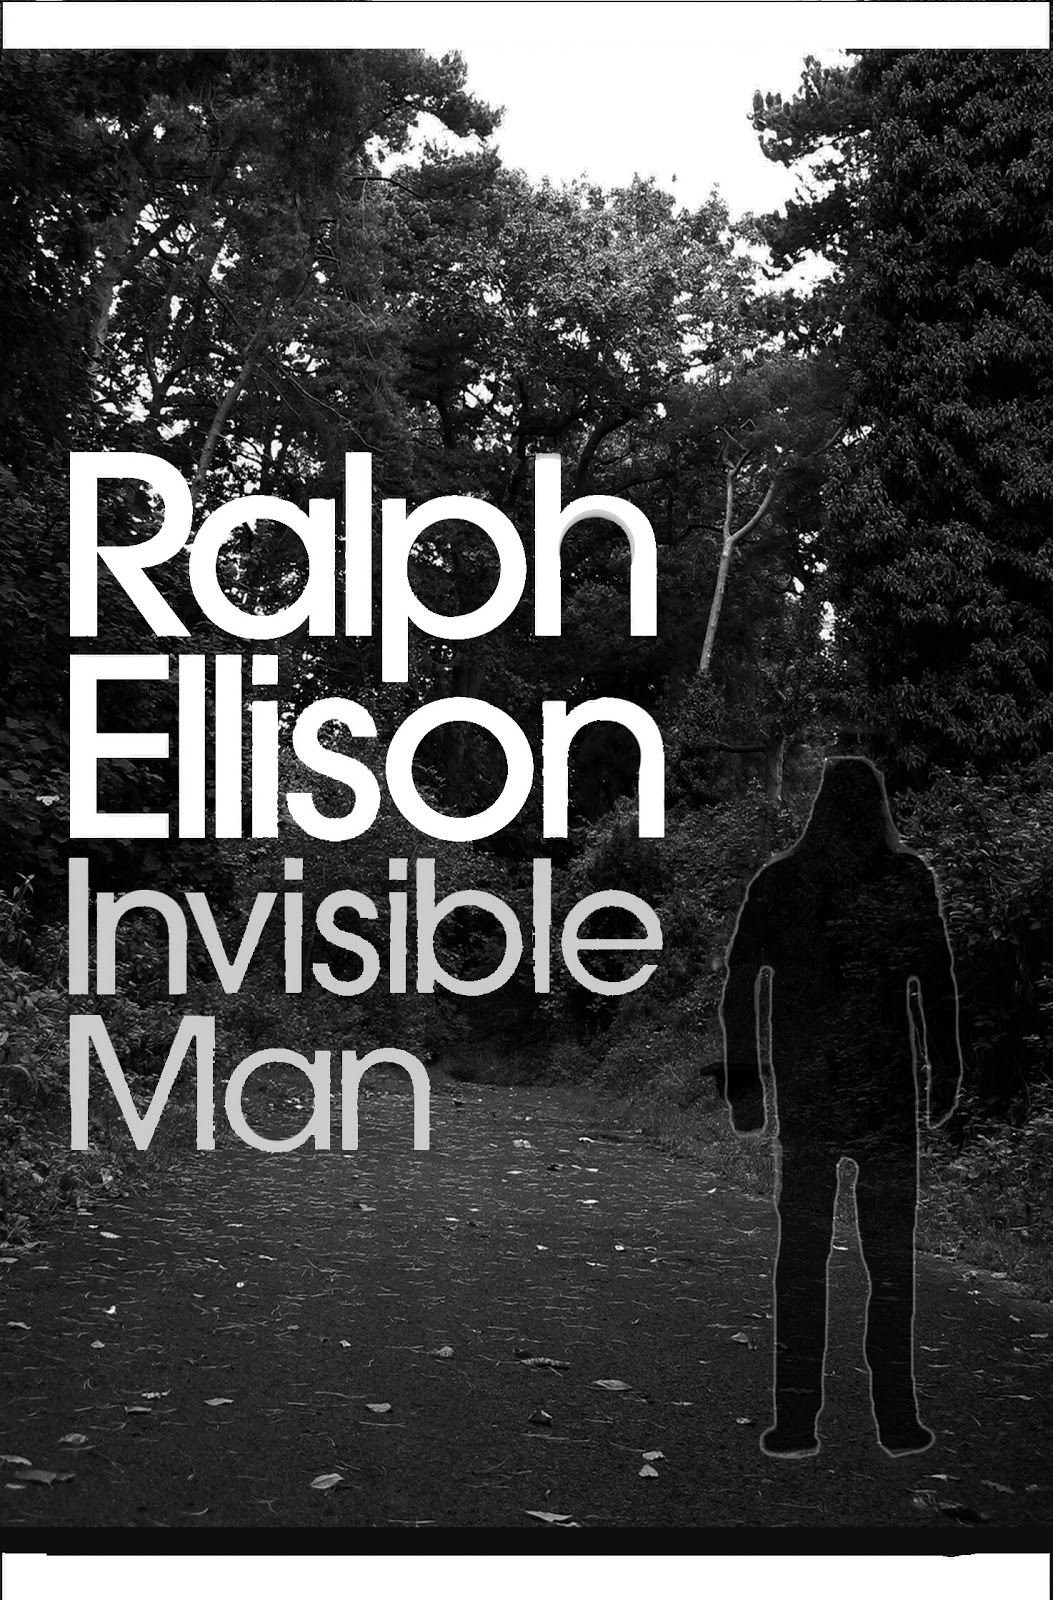 A Student From Walvis Bay Wins Unics Essay Writing Competition  Invisible Man Ralph Ellison Essays Gordon Parks Invisible Man Gordon Parks  And Ralph Ellison In Harlem